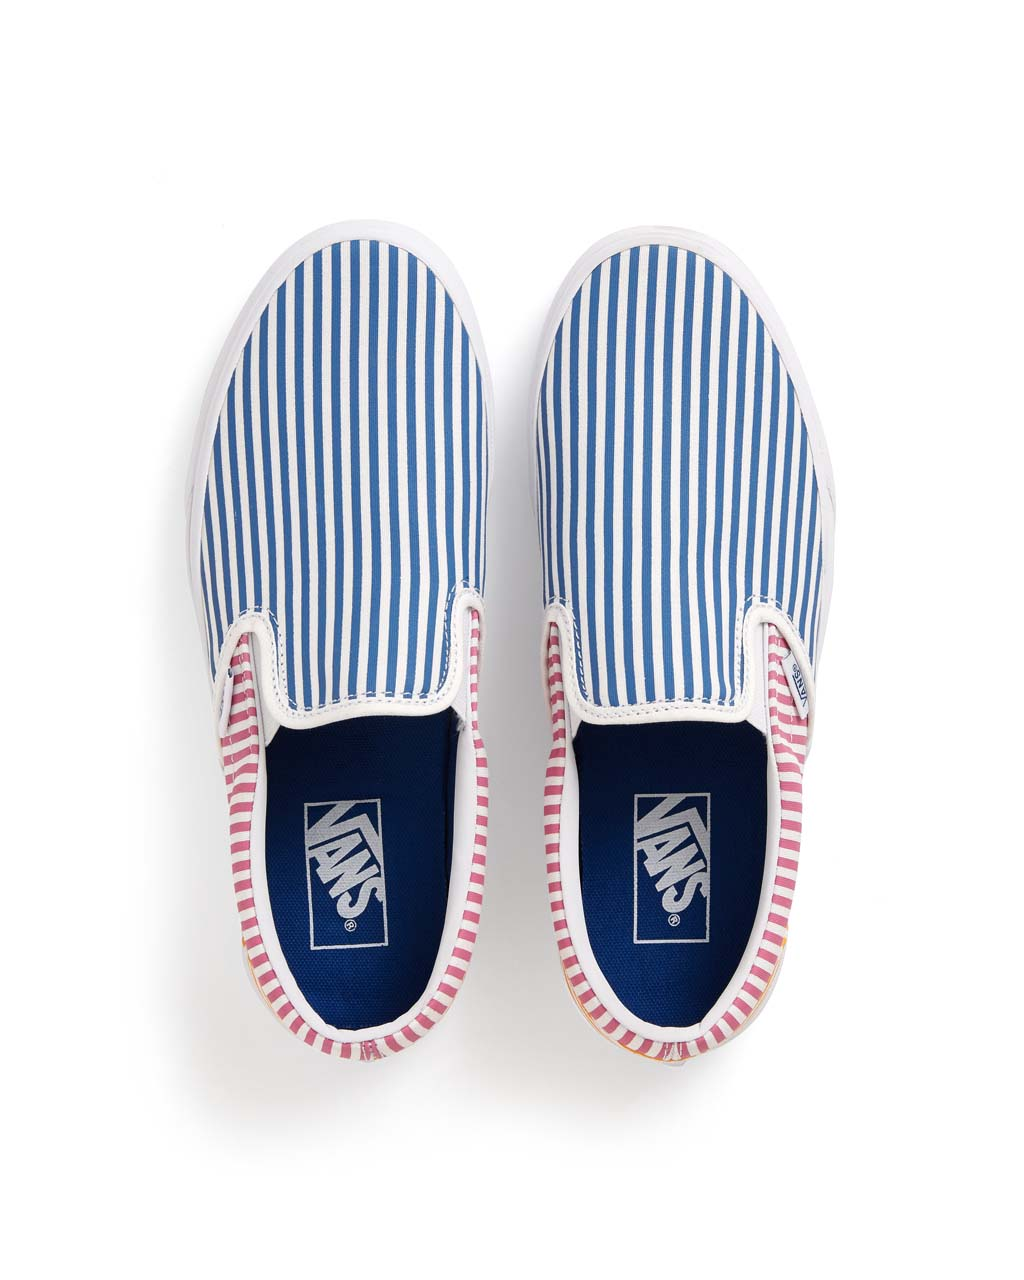 4af4a548c2a7be Classic Slip-On - Deck Club Stripes by vans - shoes - ban.do